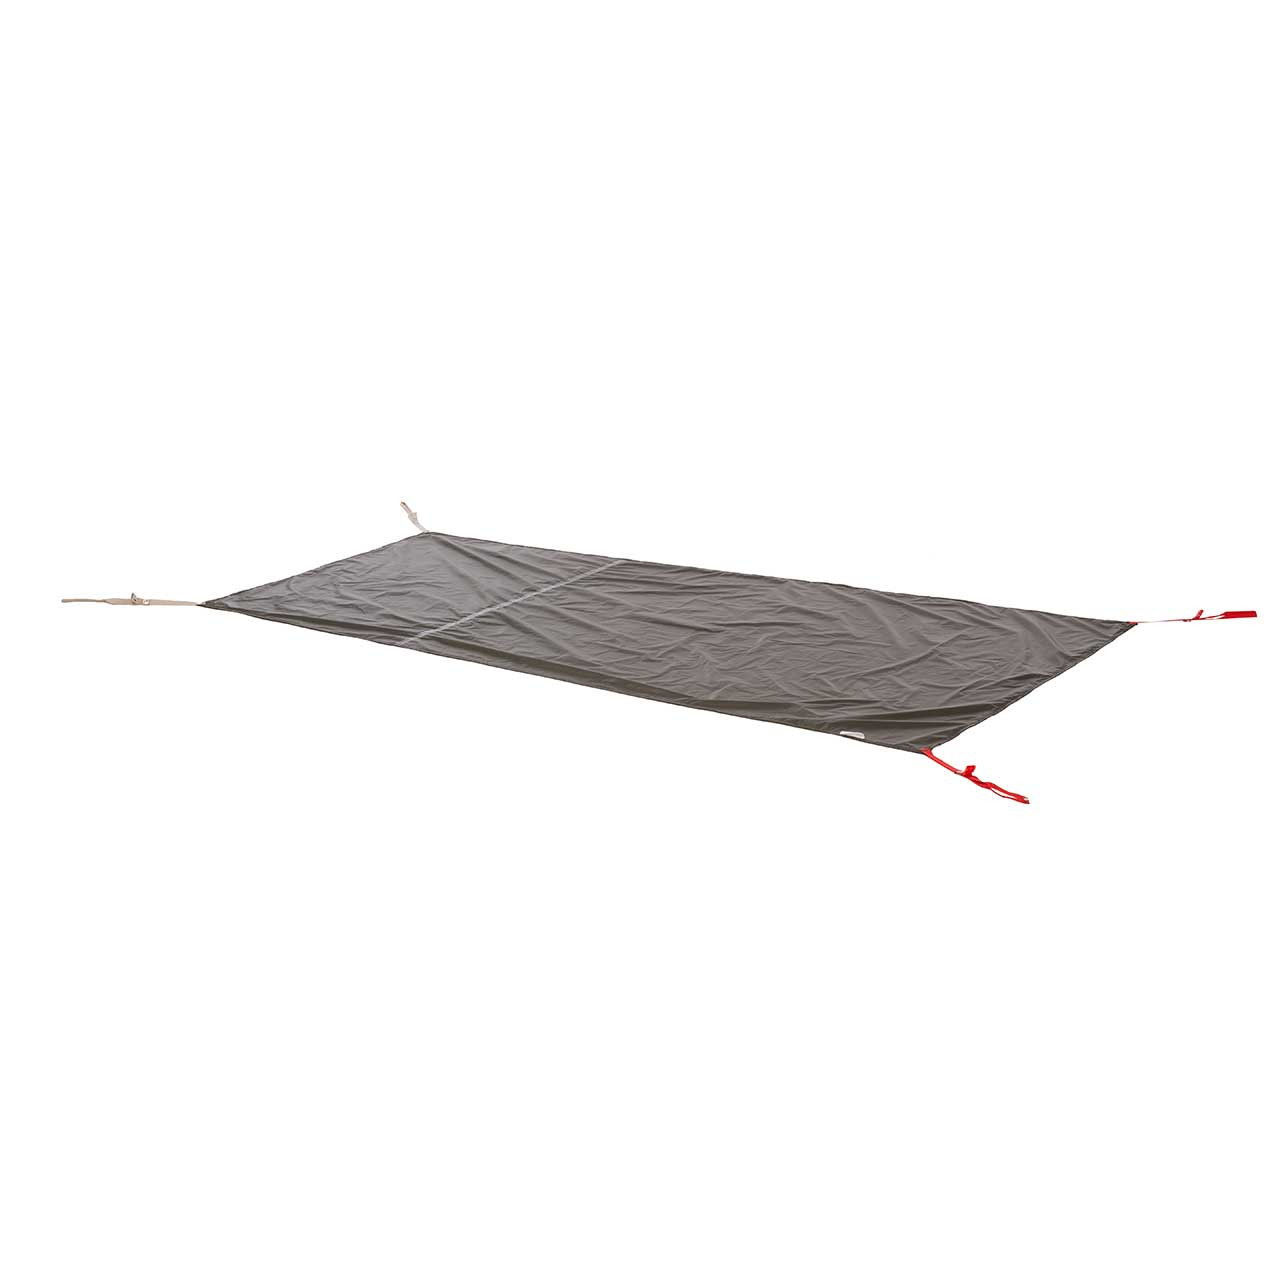 5b0126e95a9 Big Agnes Copper Spur HV 2 Expedition Footprint